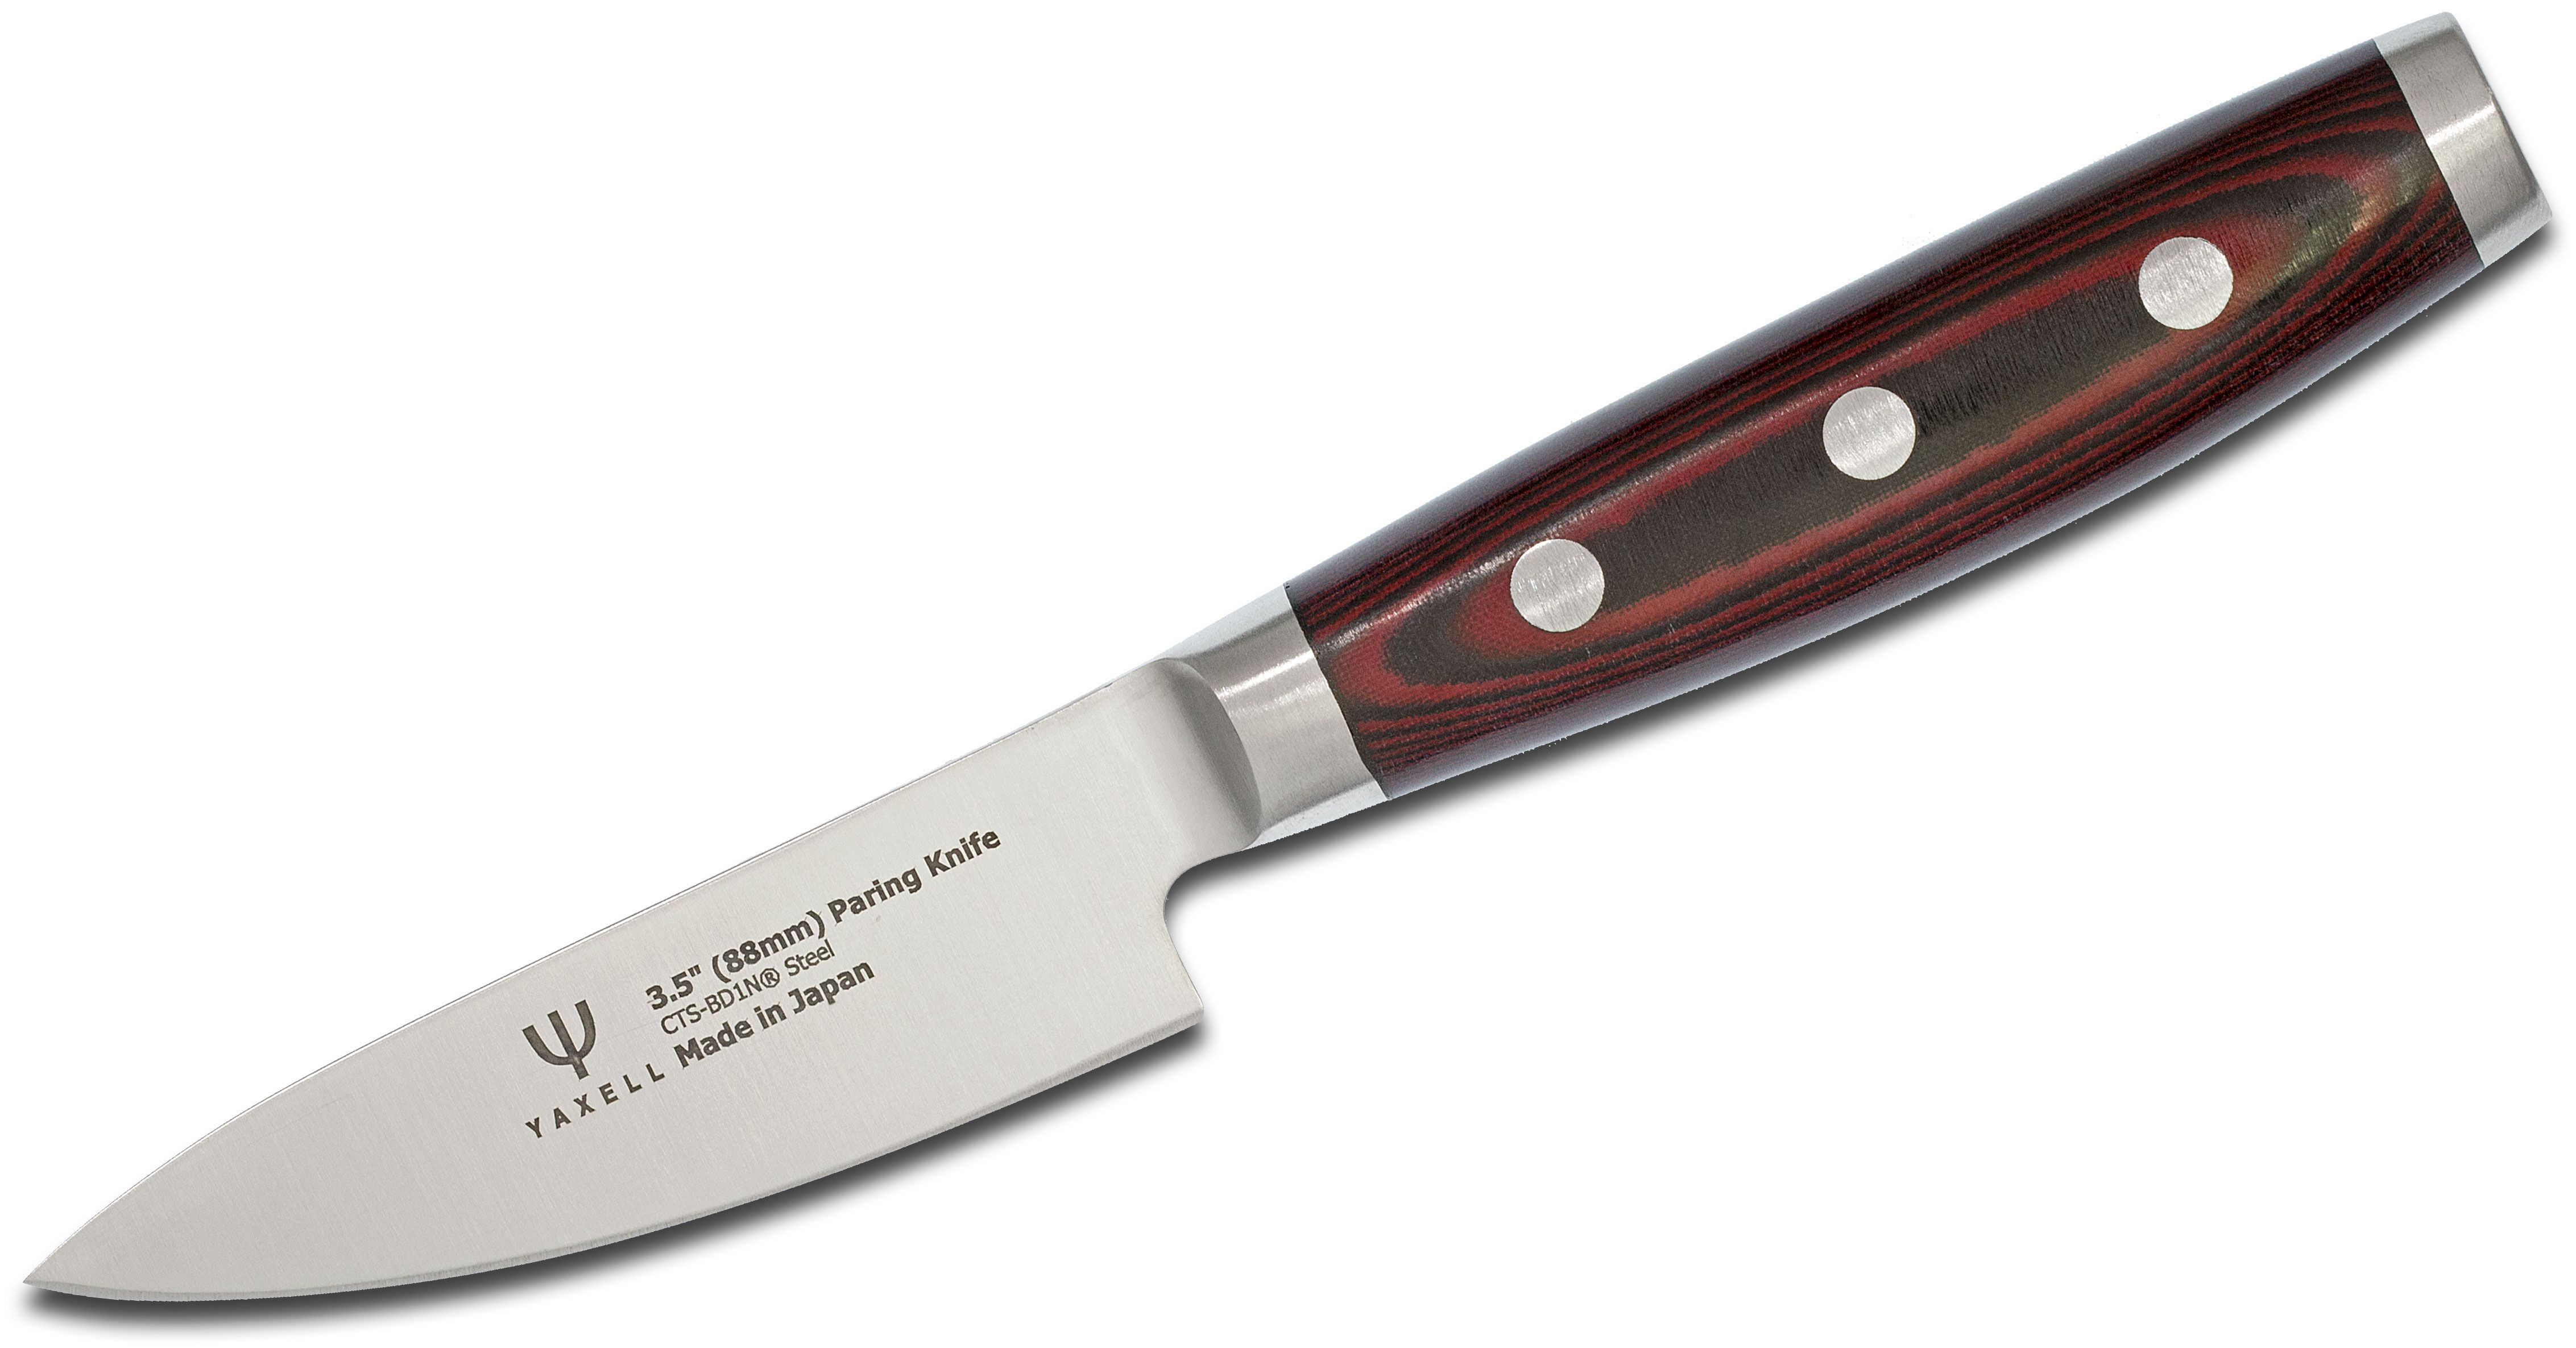 Dragon Fire by Yaxell Japan 3.5 inch Paring Knife, Red/Black Micarta Handles